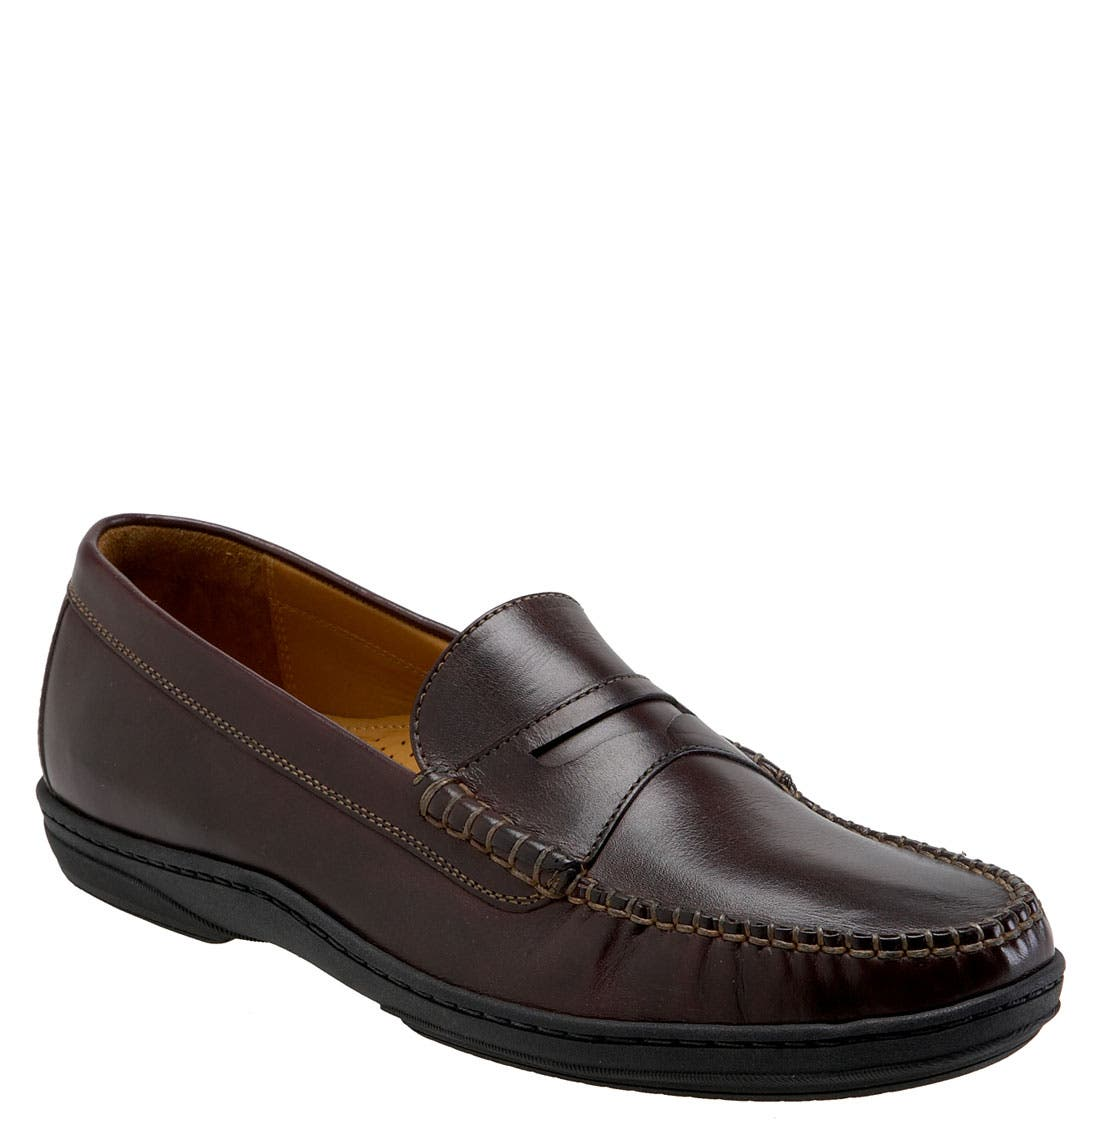 Main Image - Cole Haan 'Pinch Cup' Penny Loafer